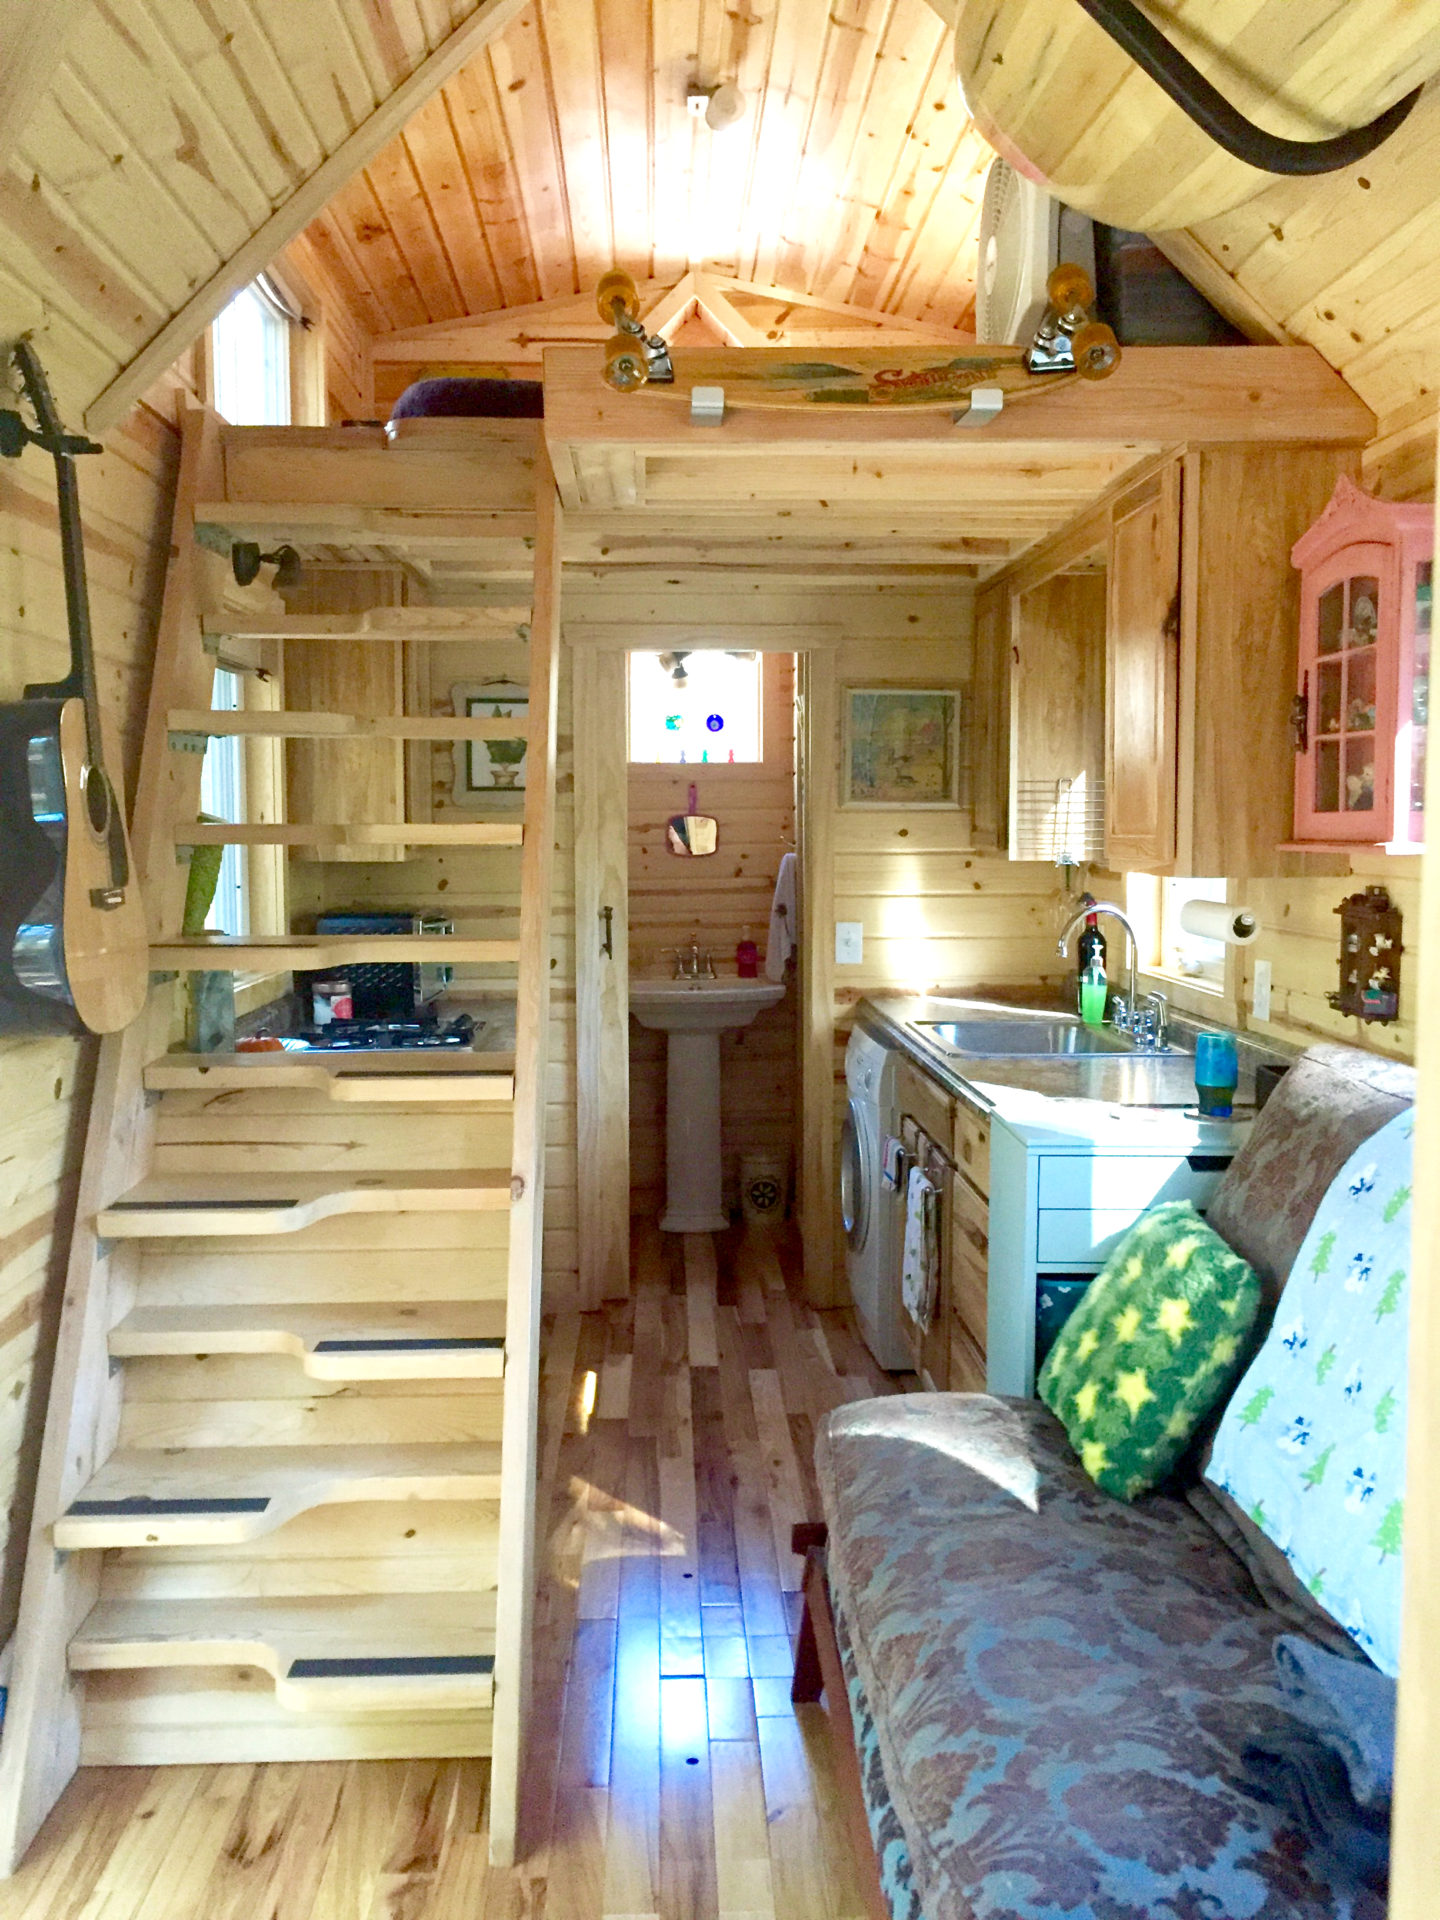 Nickis Colorful Victorian Tiny House After One Year